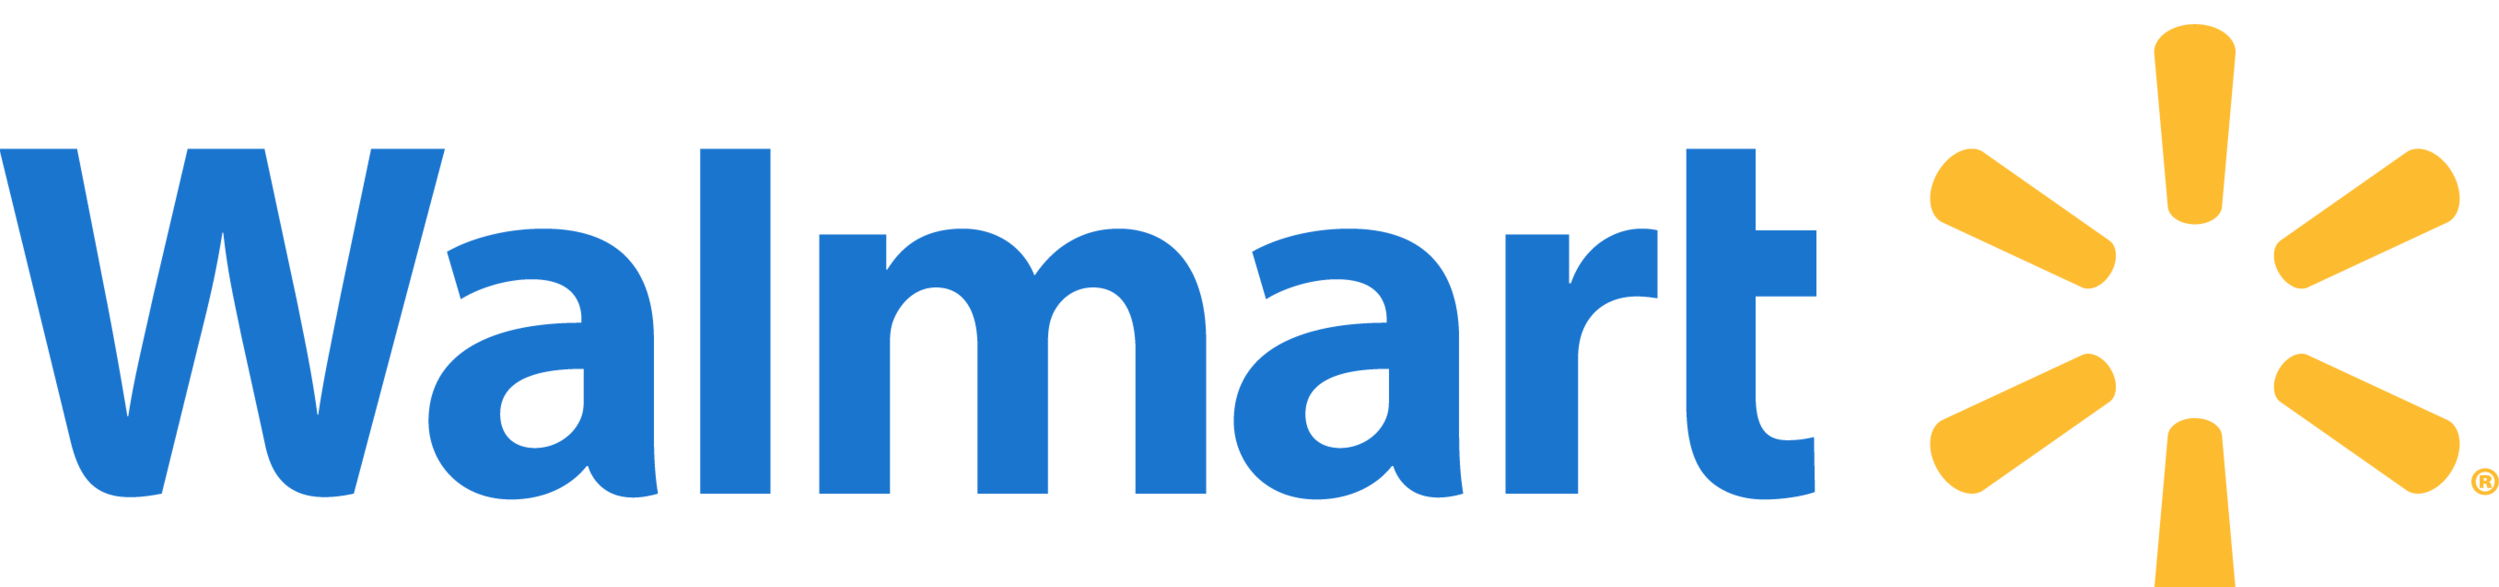 Walmart-Logo-pictures-walmart-sign-new-logo16.png